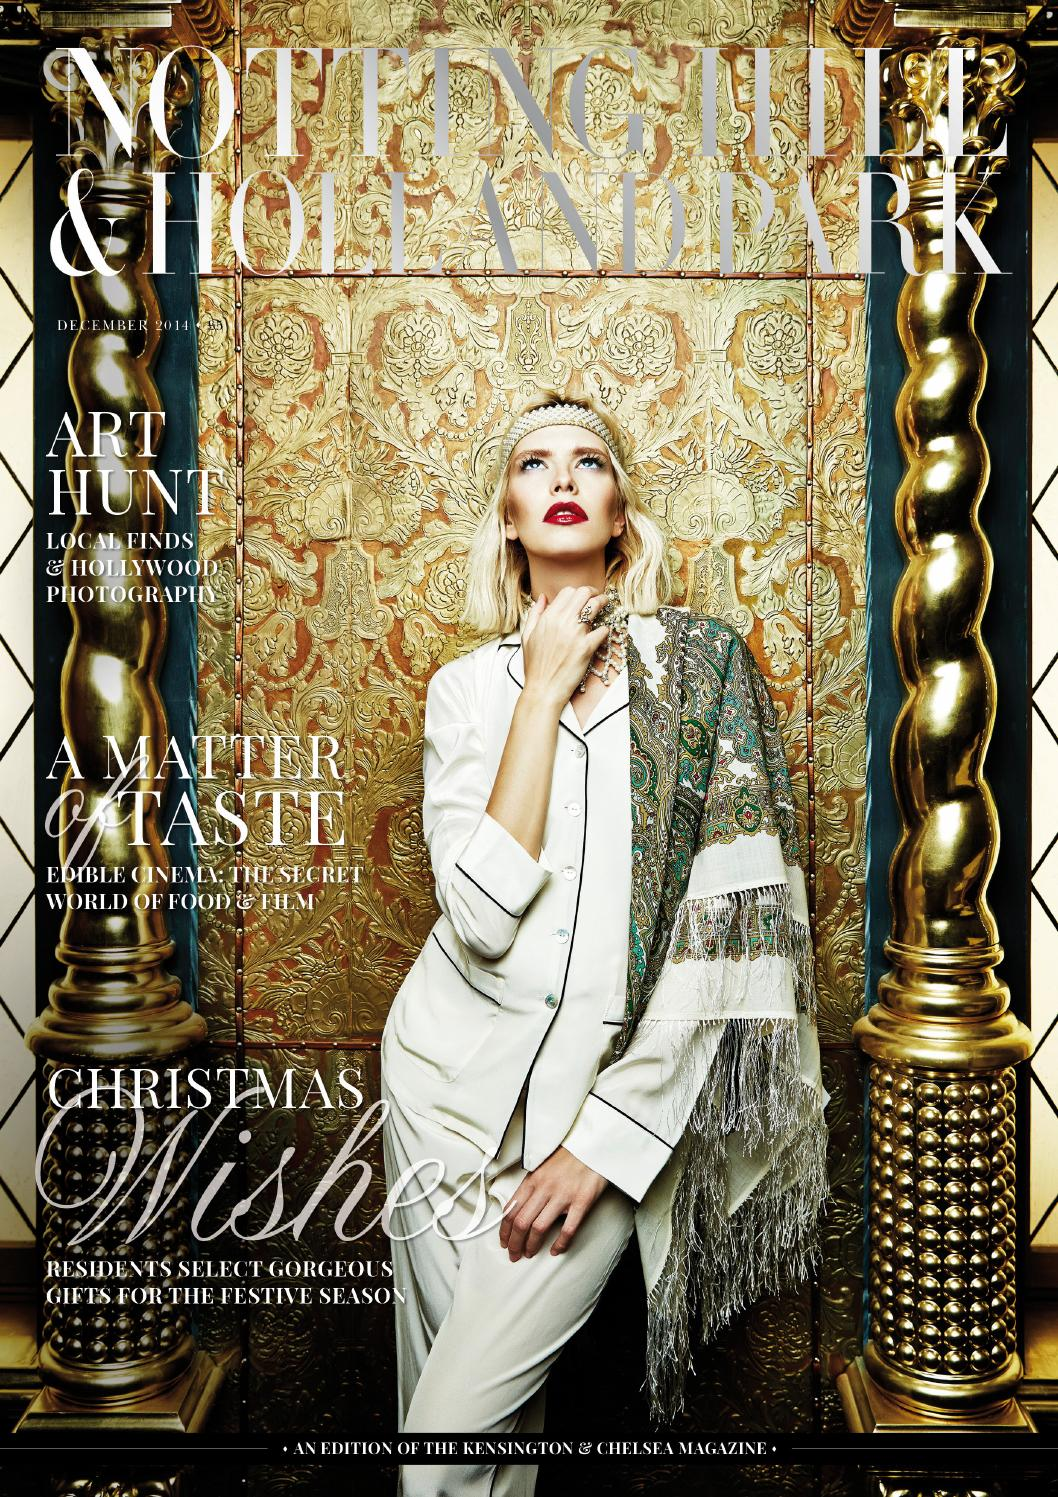 The Notting Hill  Holland Park magazine December 2014 by